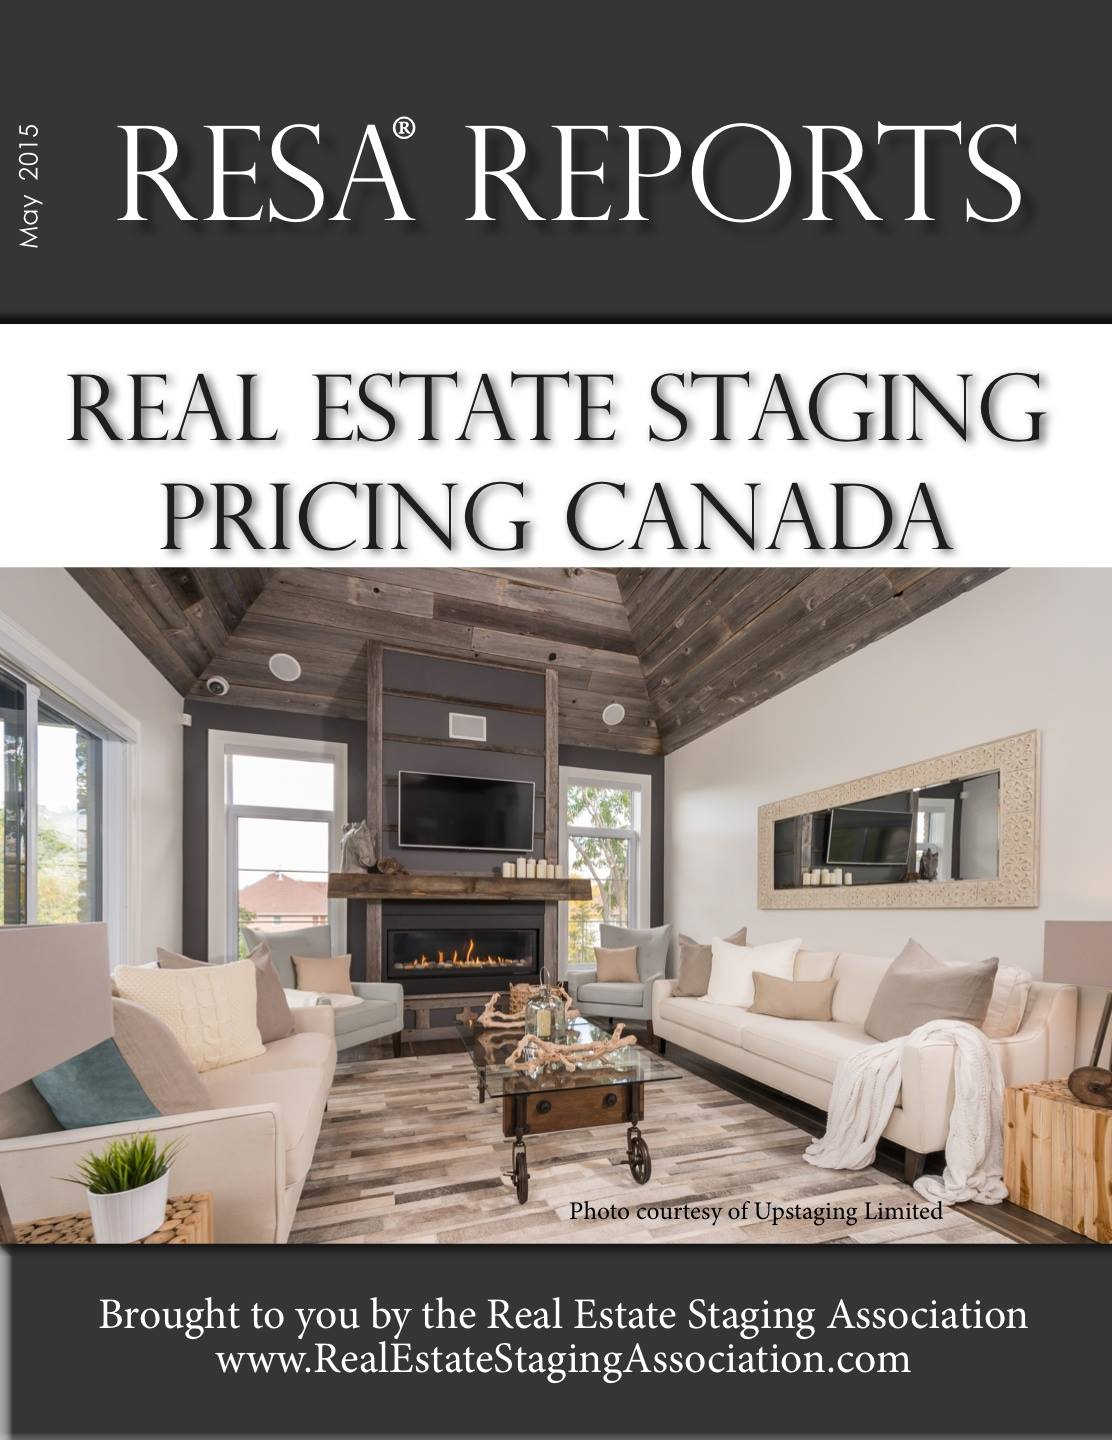 RESA Report Pricing Canada Cover